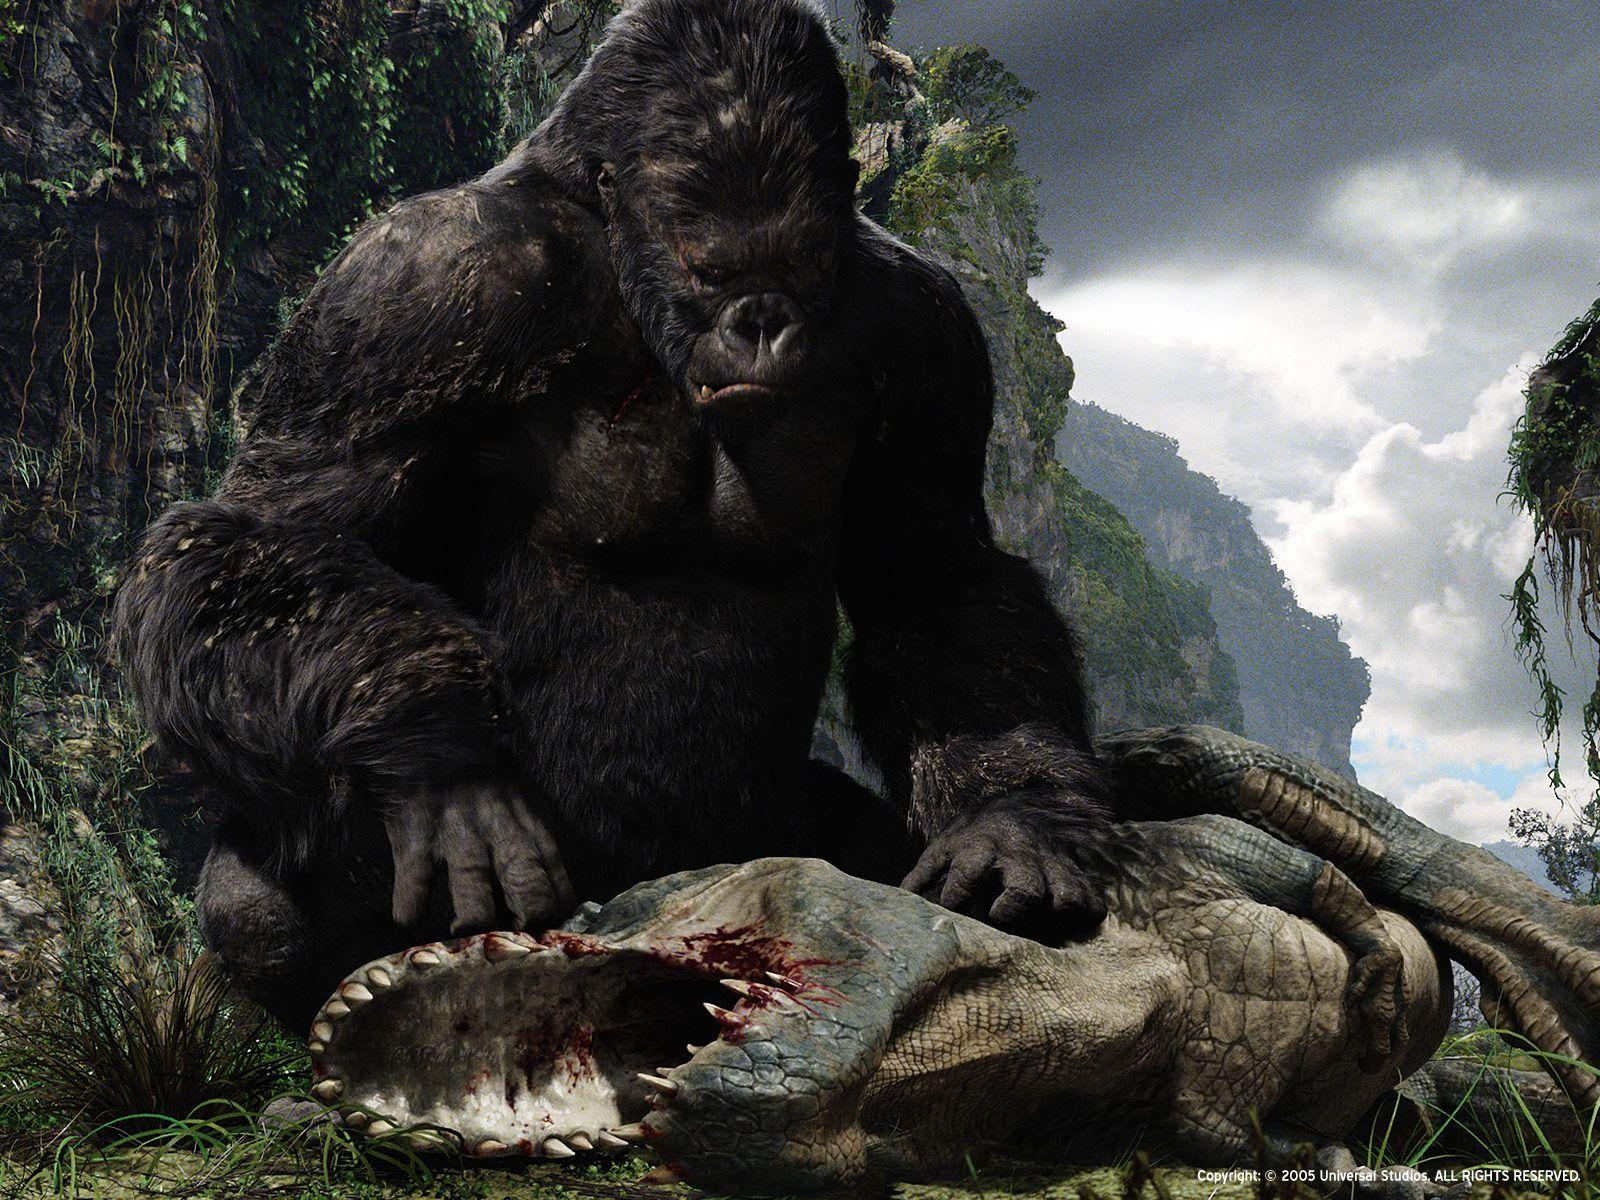 King kong 2005 hd wallpapers wallpaper cave - King kong 2005 hd wallpapers ...